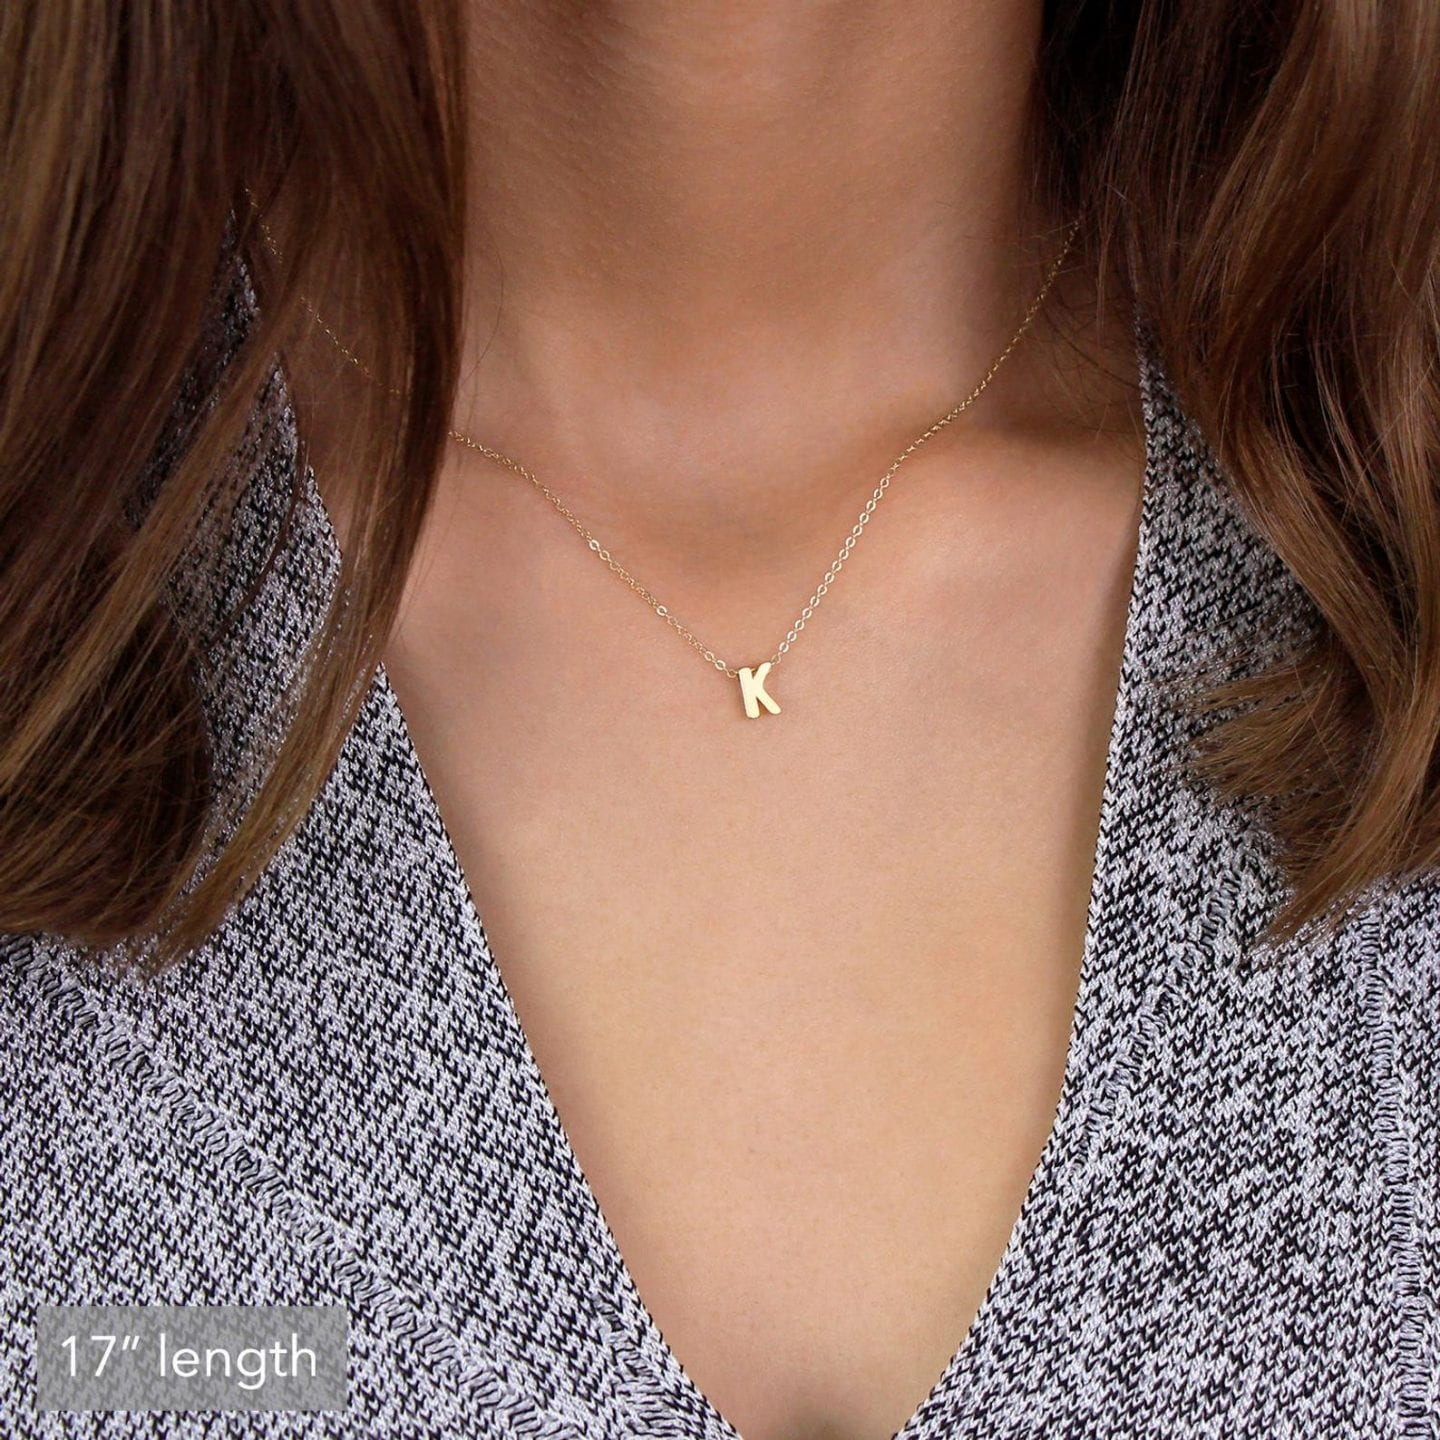 Initial Jewelry by popular San Francisco fashion blog, Just Add Glam: image of a IRO initial necklace.